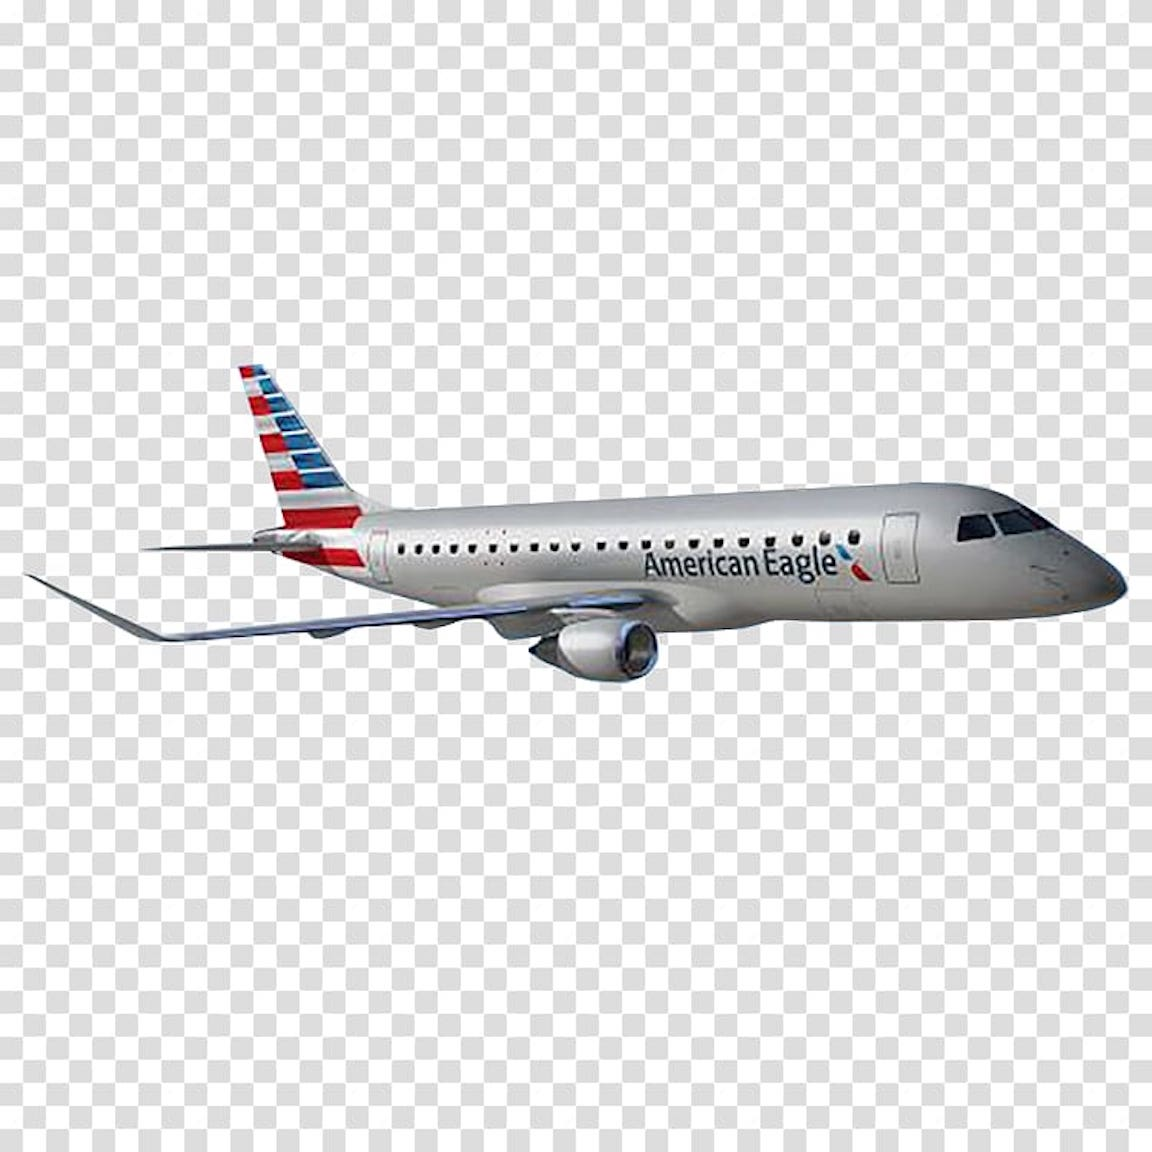 Free Classic Airplane Cliparts, Download Free Clip Art, Free Clip Art on  Clipart Library